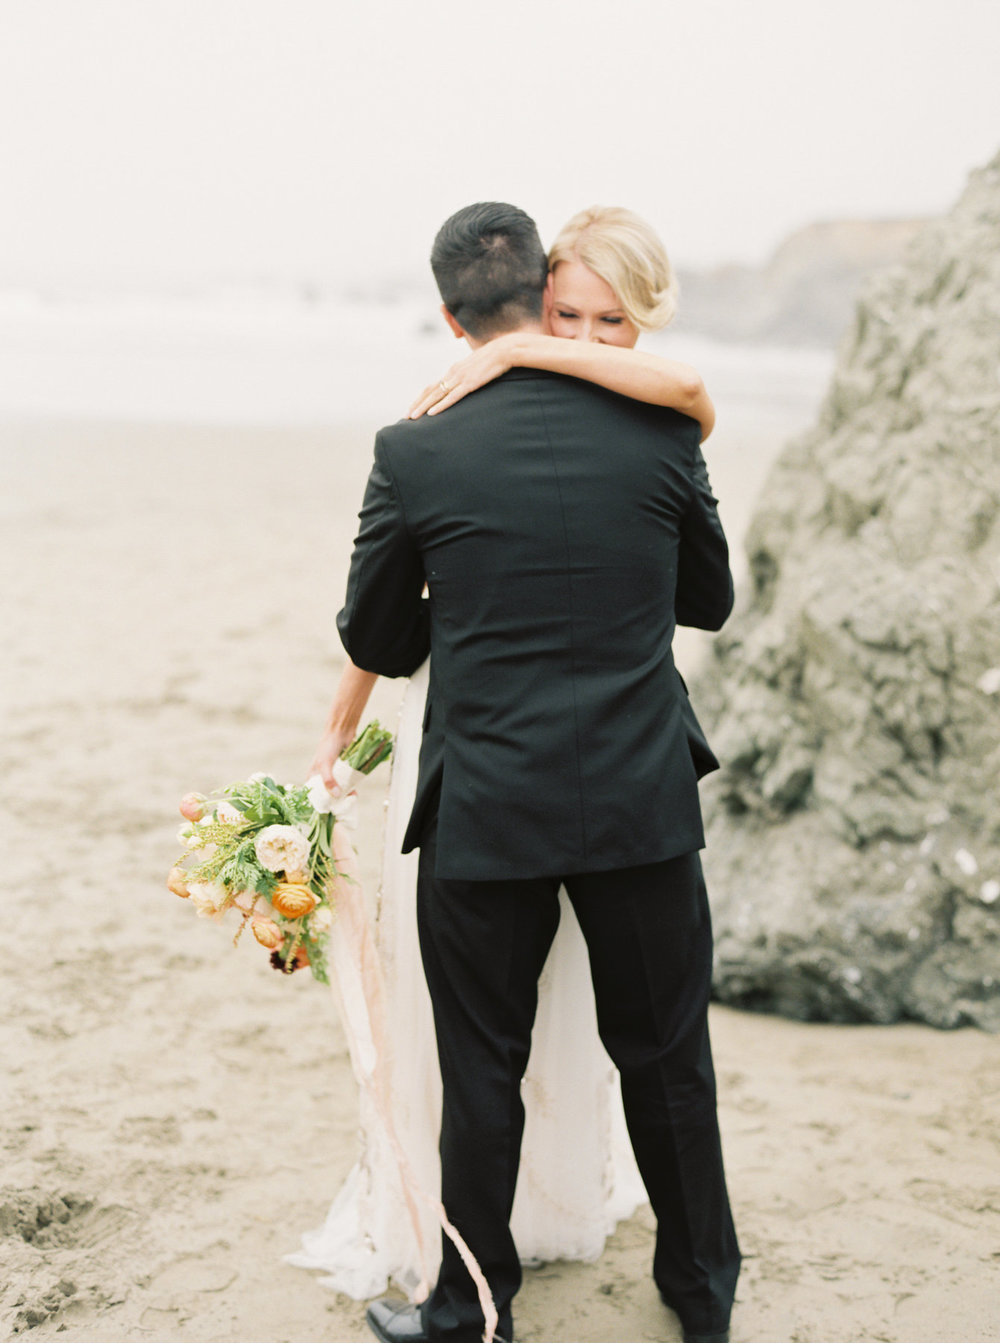 WilderFloralCo_CoastalElopement_BrideAndGroomOnBeach